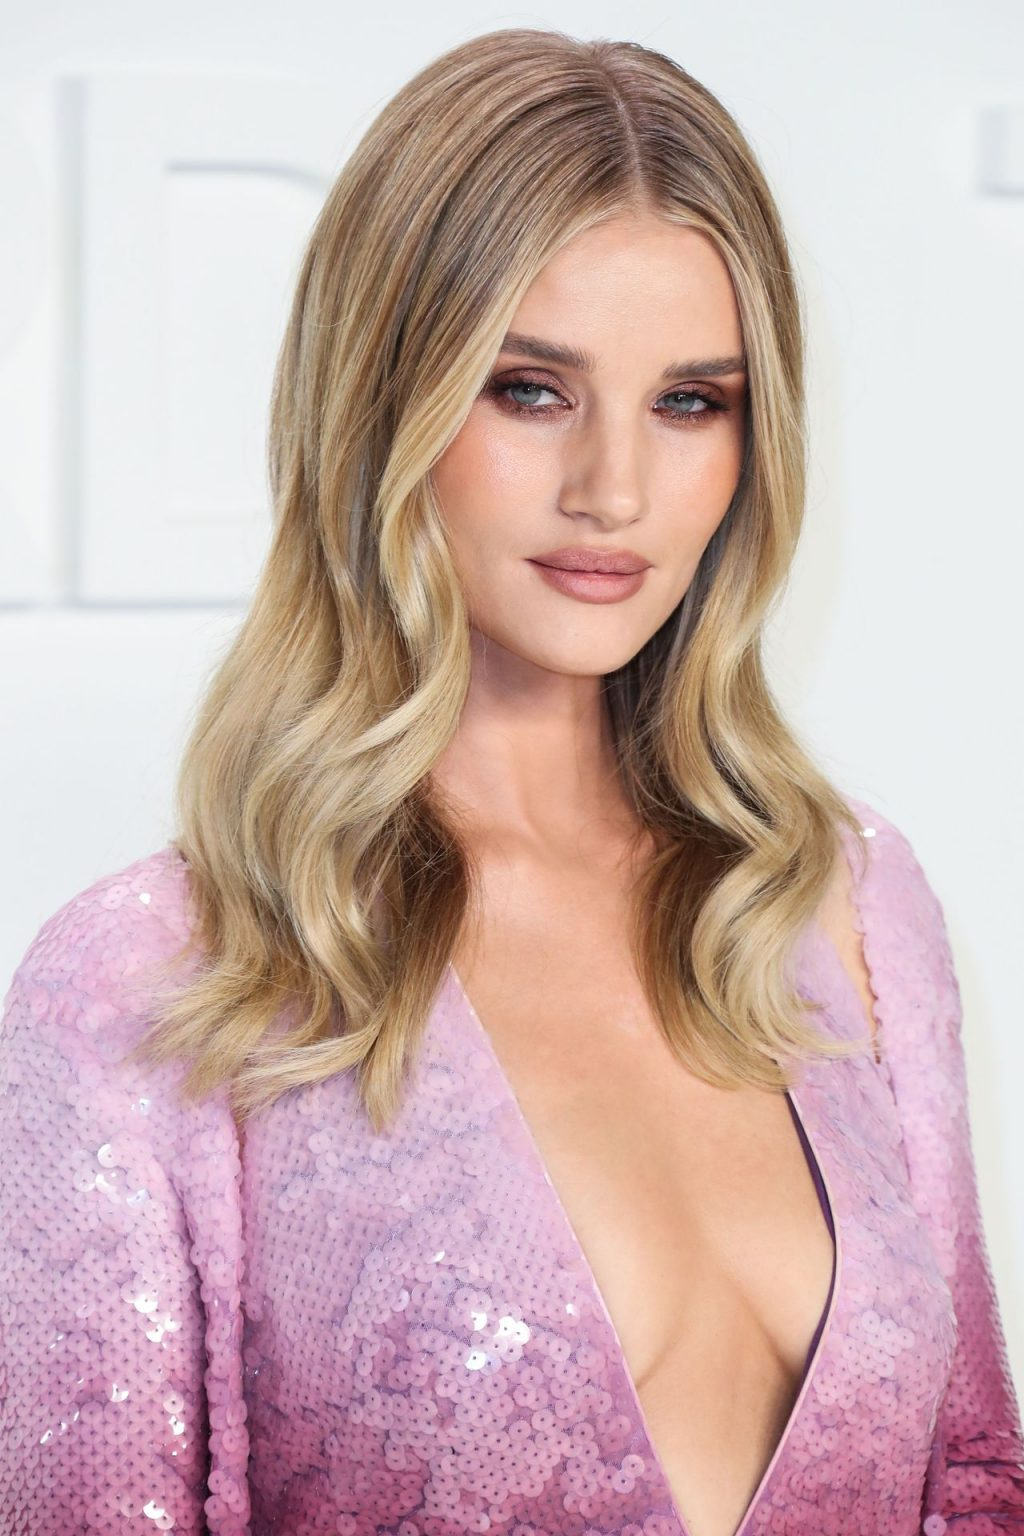 Rosie Huntington Whiteley Sexy The Fappening Blog 78 1024x1536 - Rosie Huntington-Whiteley Shows Her Cleavage at the Tom Ford Fashion Show (115 Photos)